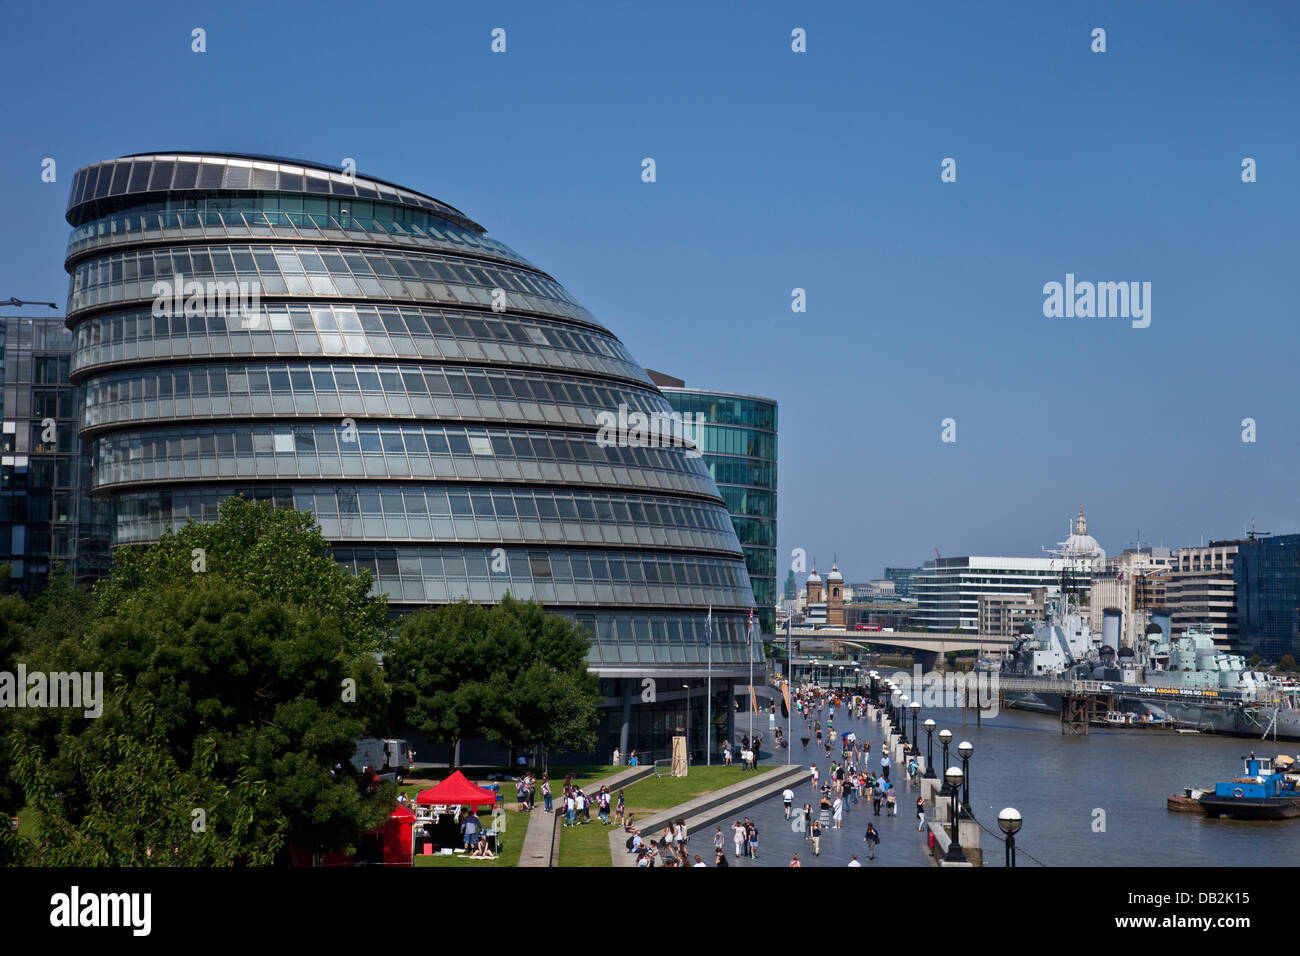 The London Assembly Building (City Hall) London, England - Stock Image